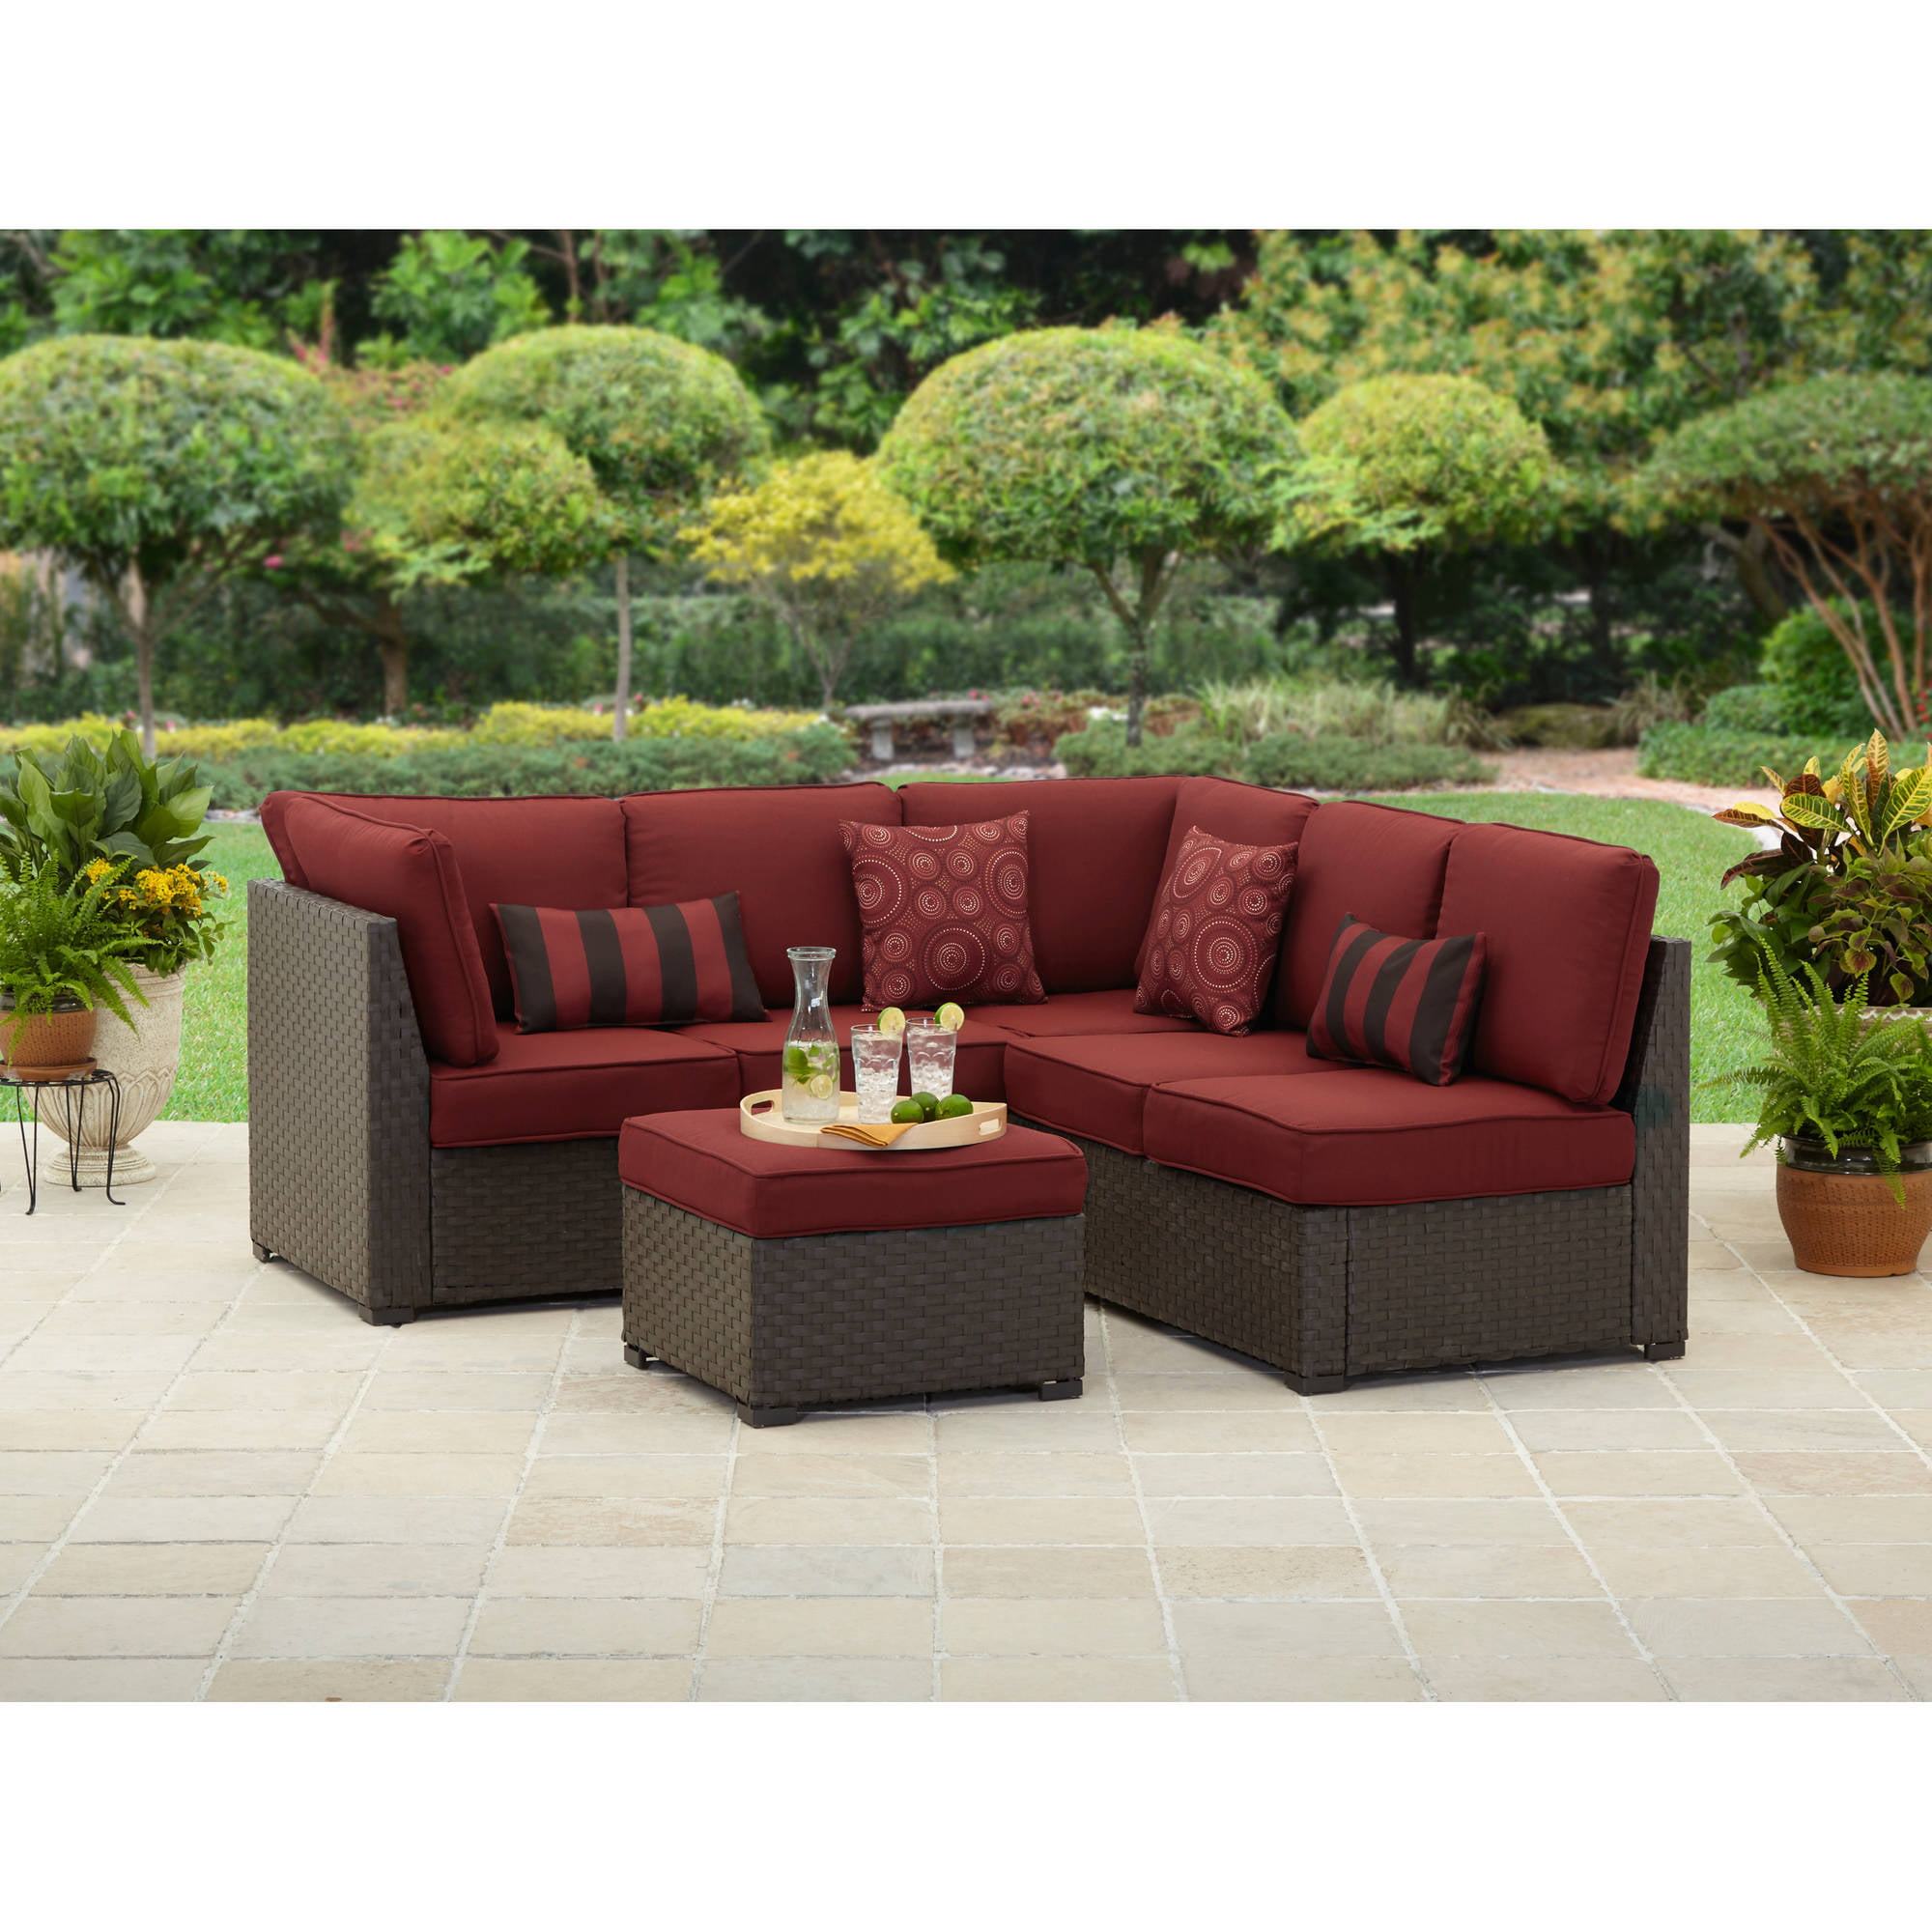 Permalink to Inspirational Patio Furniture Sectional Sale